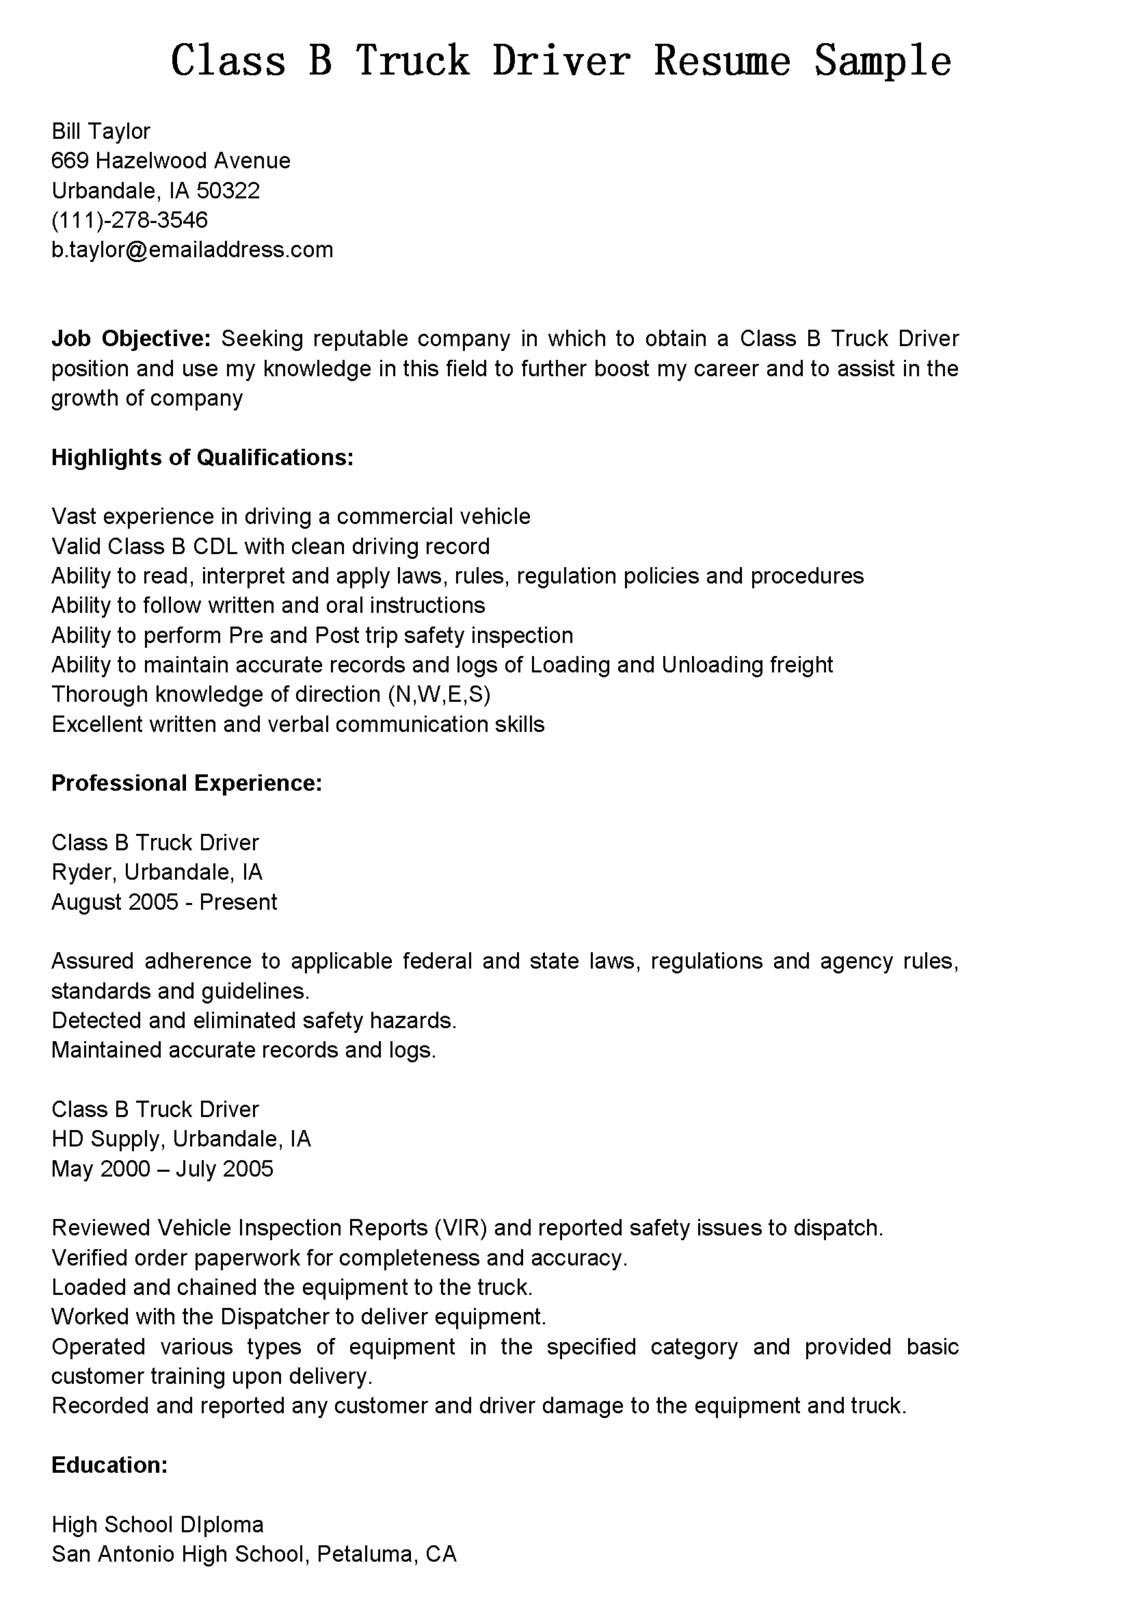 Resume Samples for Truck Drivers with An Objective Driver Resumes Class B Truck Driver Resume Sample